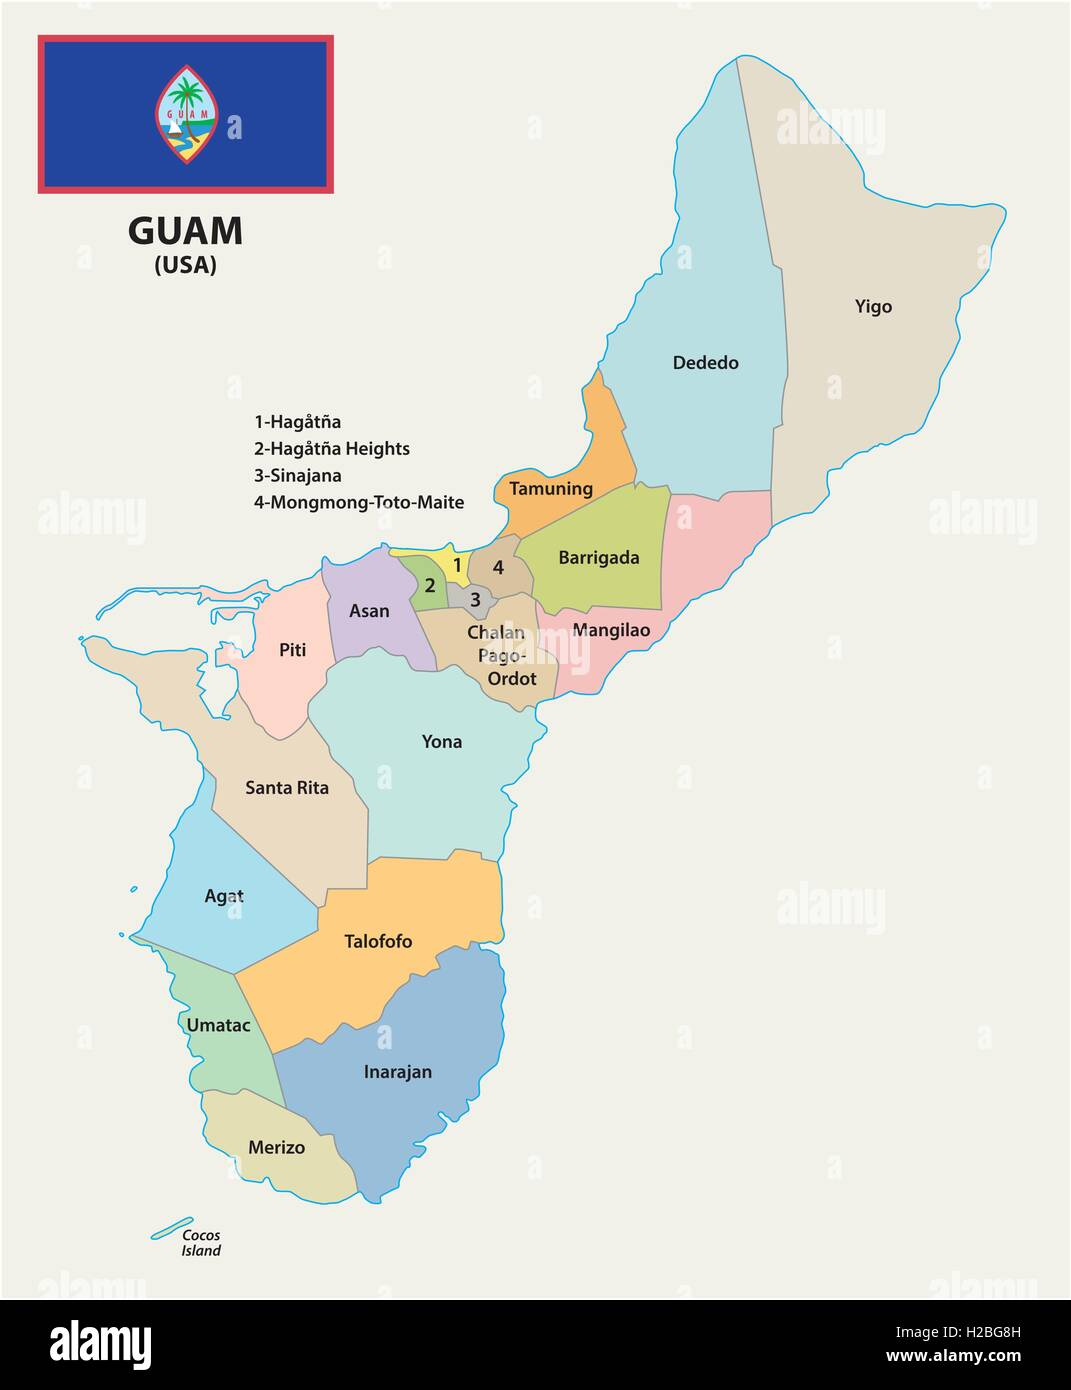 Guam map stock photos guam map stock images alamy guam administrative map with flag stock image gumiabroncs Gallery